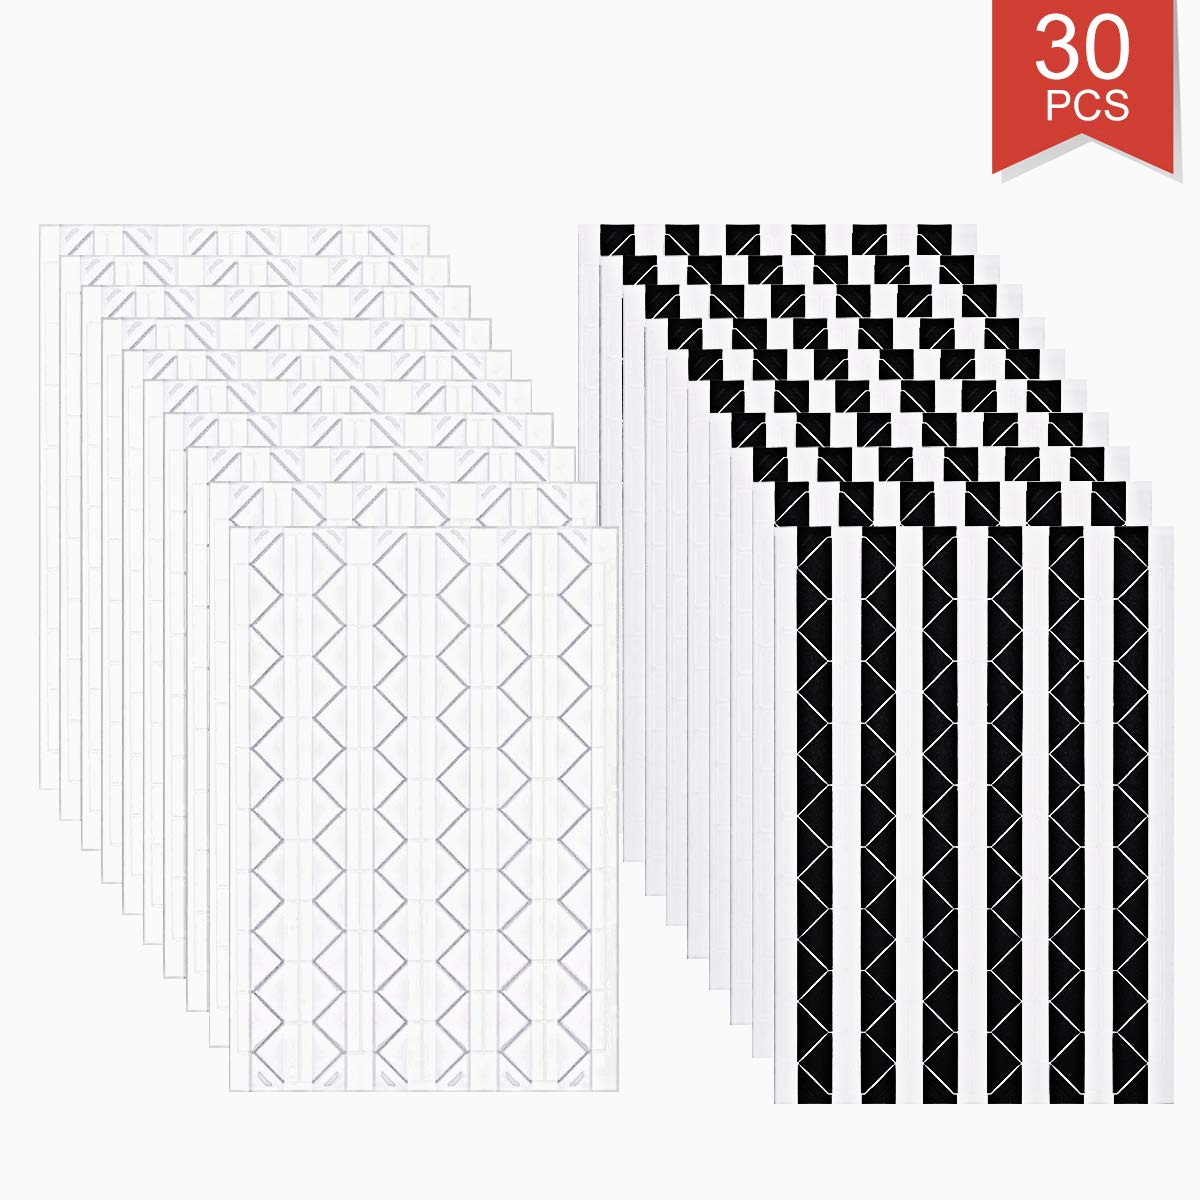 Faxco 30 Sheets White and Black Photo Corner Stickers,Self Adhesive Corners for Scrapbook Picture Album,Photo Decoration Parts 3060 Pieces